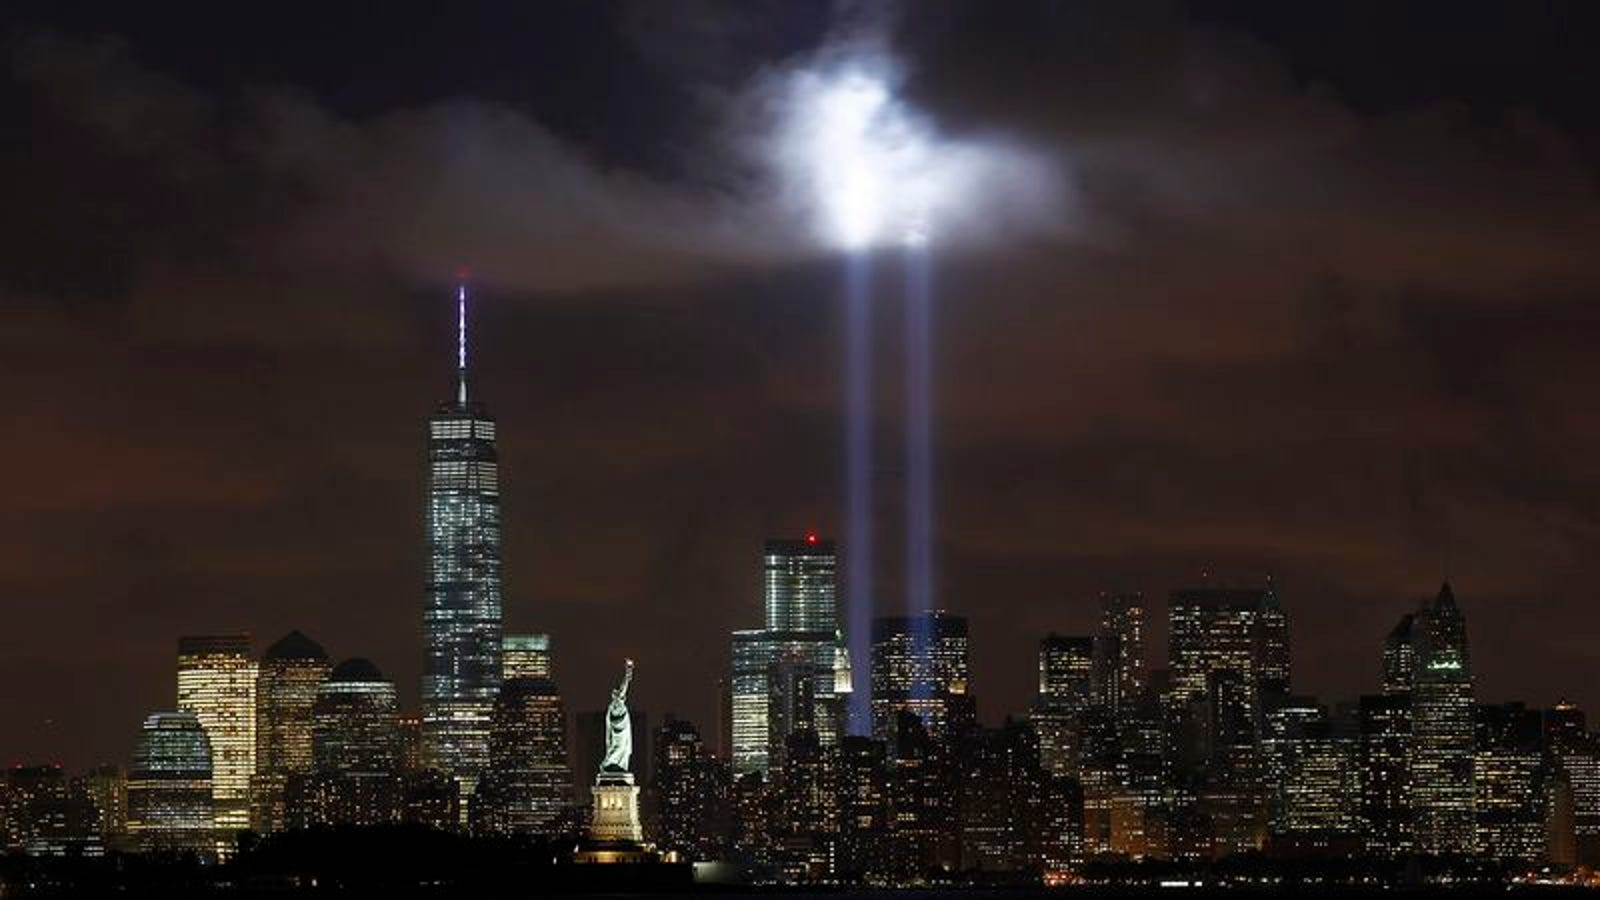 Nation Just Goes Ahead And Decides 'Freedom Prevails Over Hate' Is Lesson Of 9/11